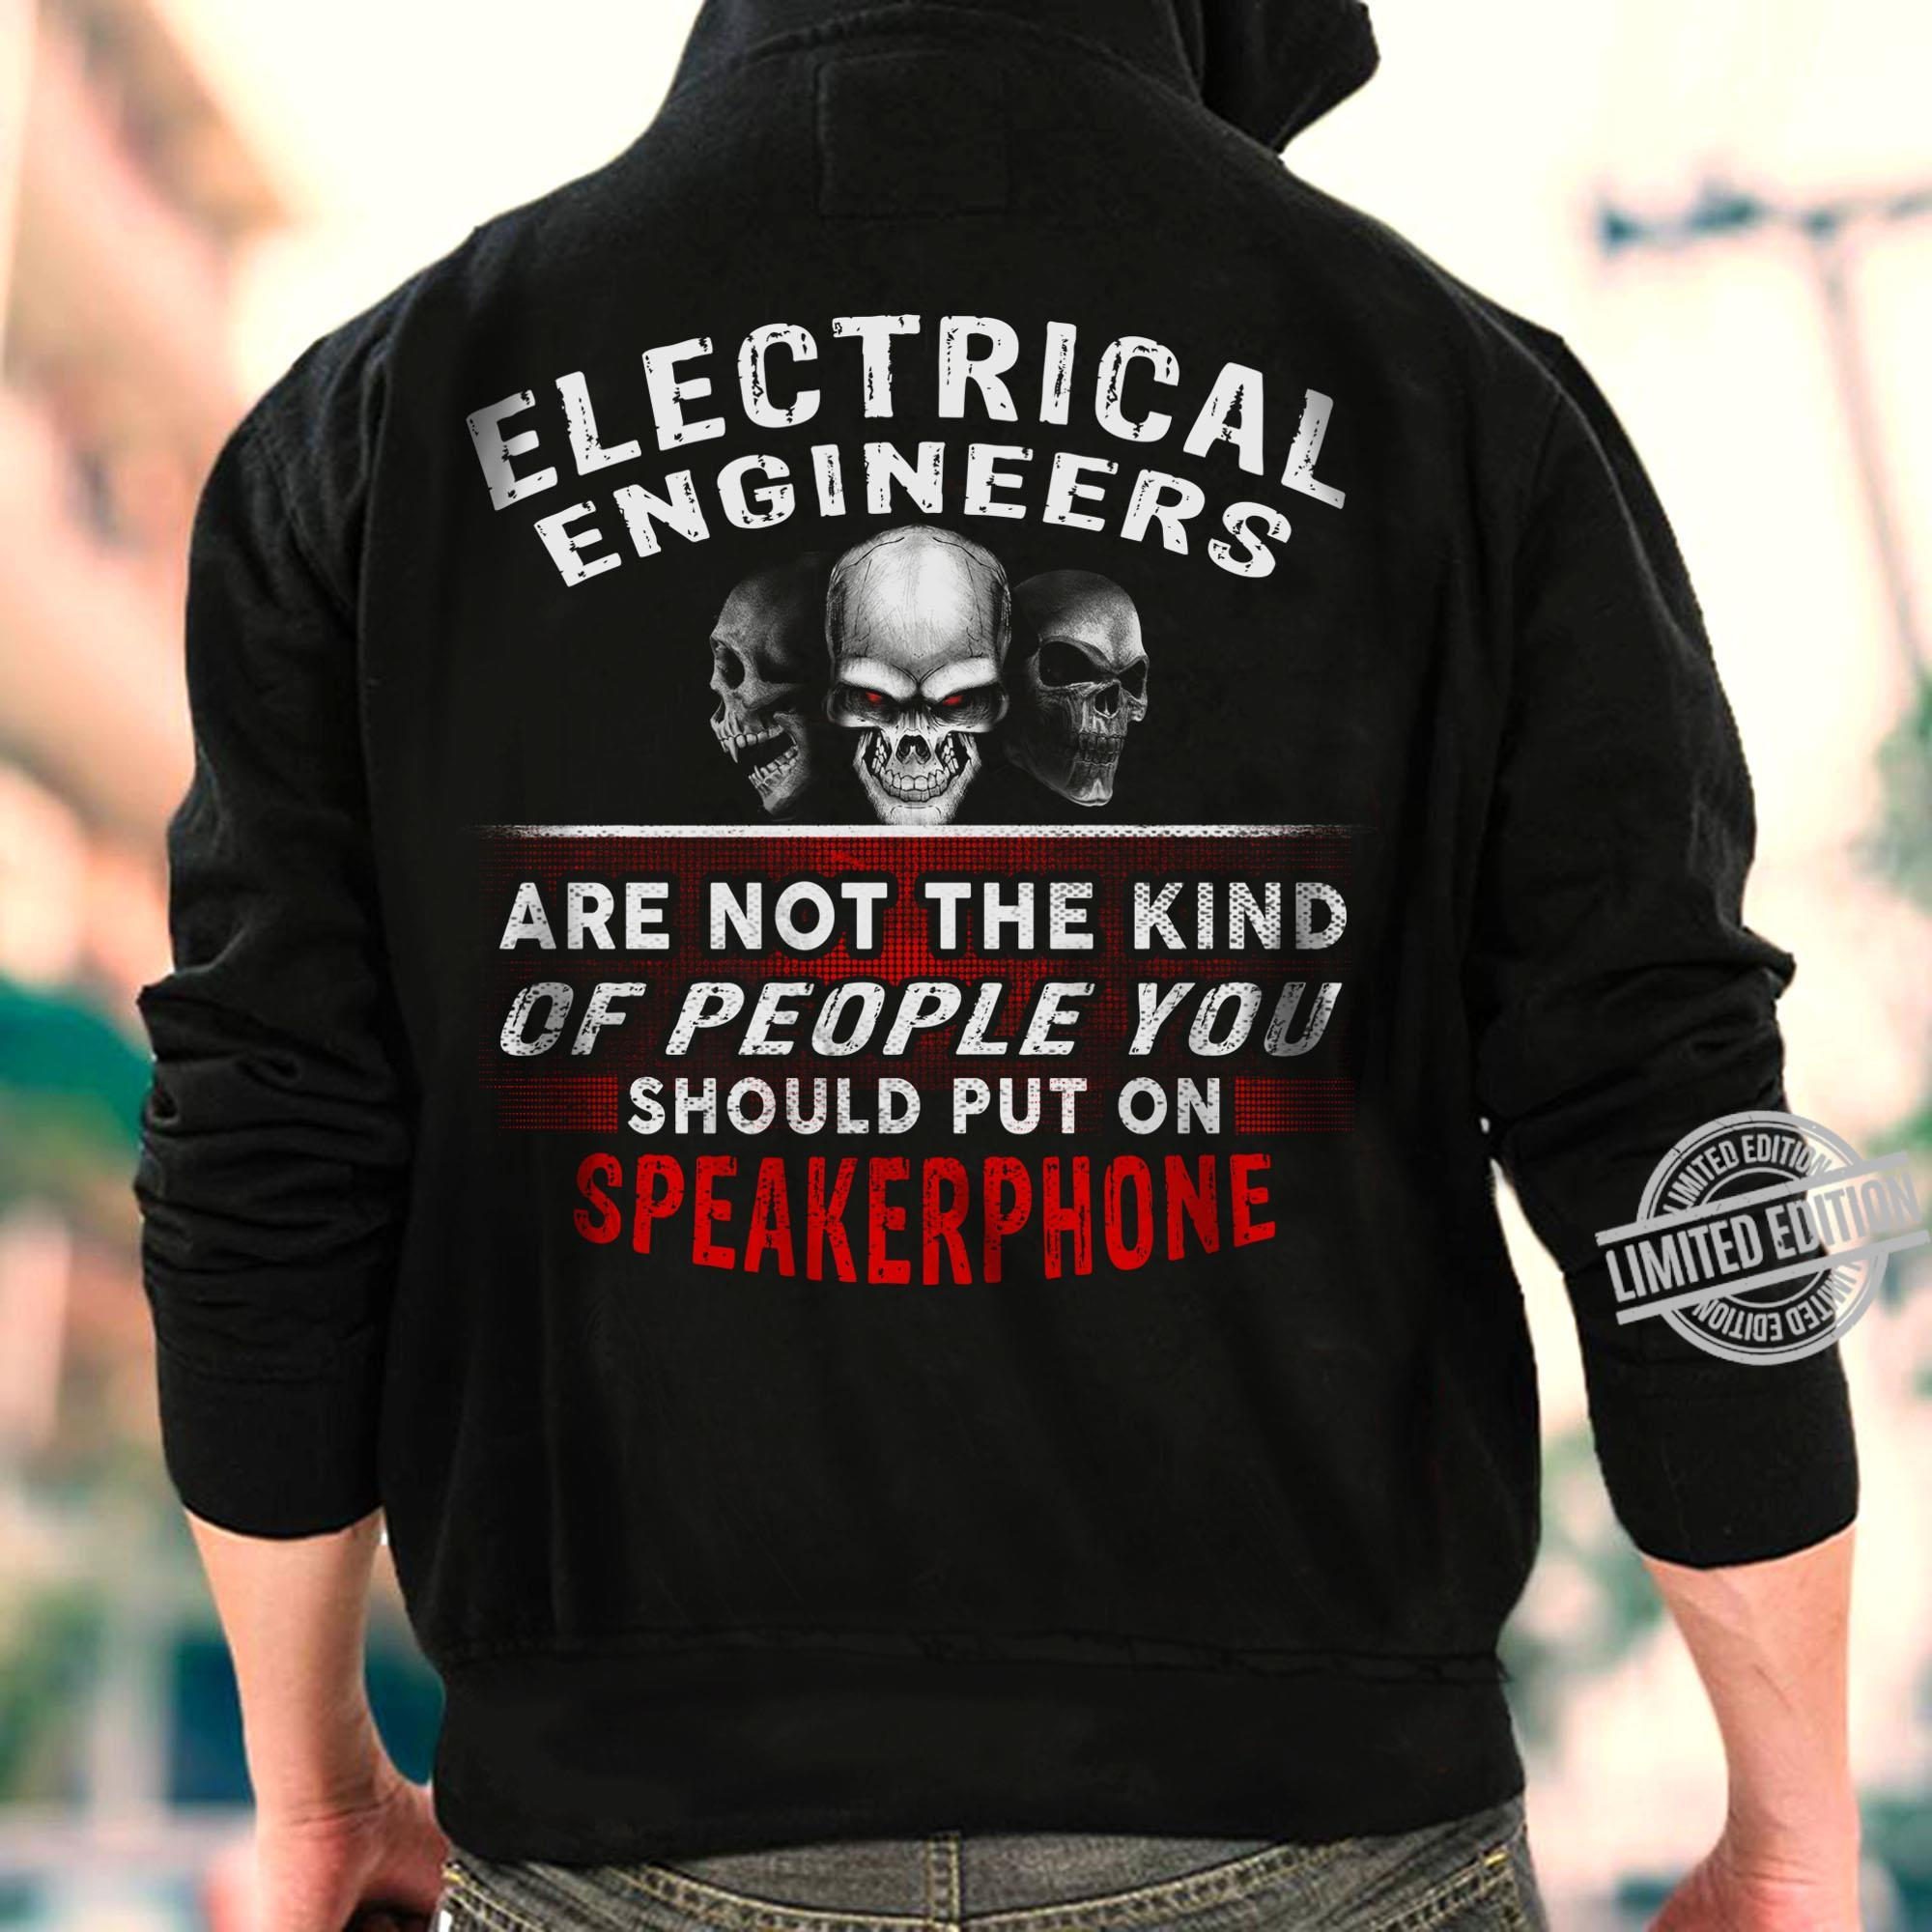 Electrical Engineers Are Not The Kind Should Put On Speakphone Shirt